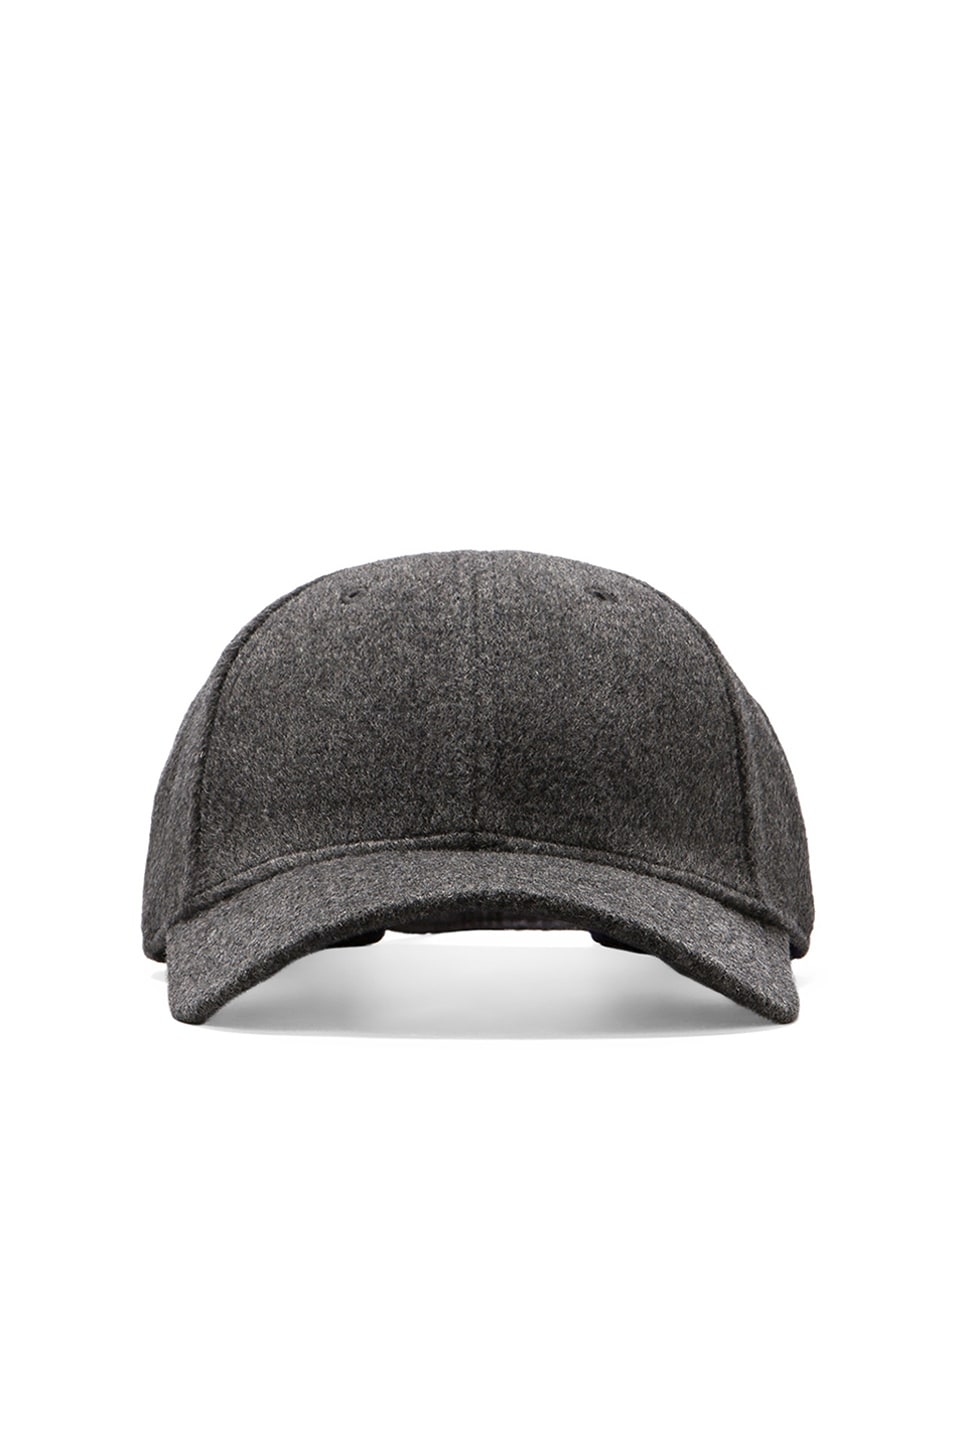 Gents Co. Luxe Cashmere Blend Cap in Grey